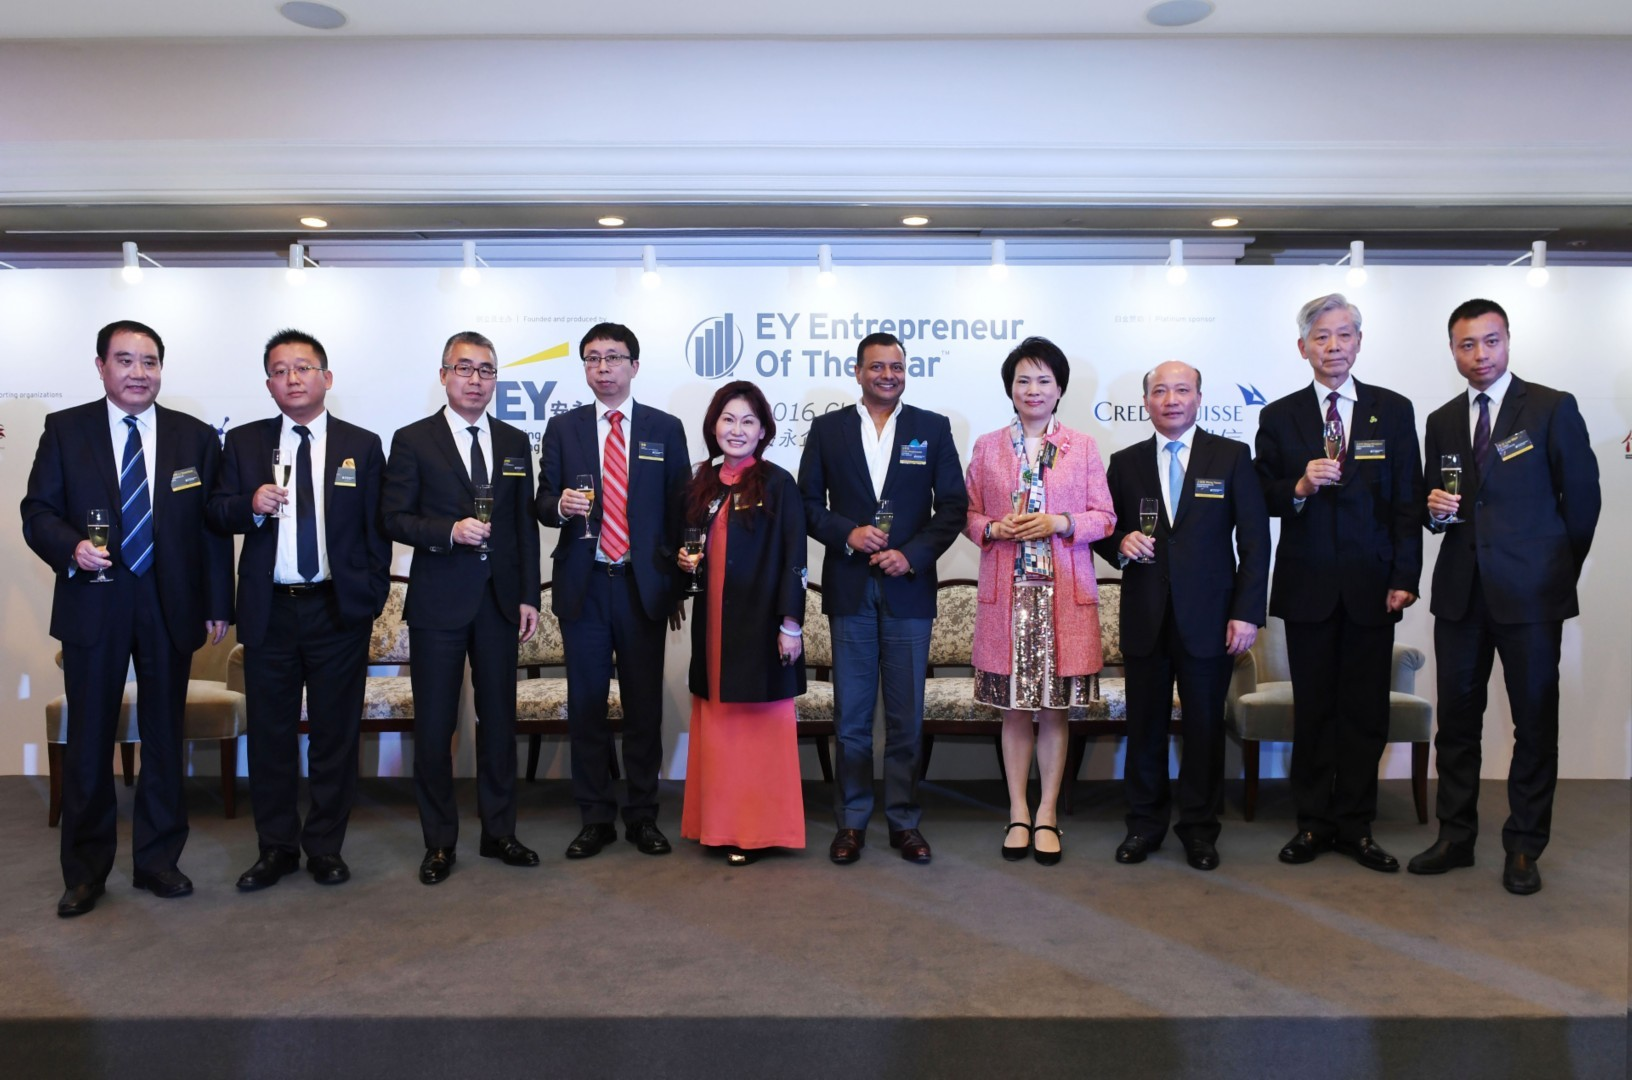 EY Entrepreneur Of The Year 2016 China winners